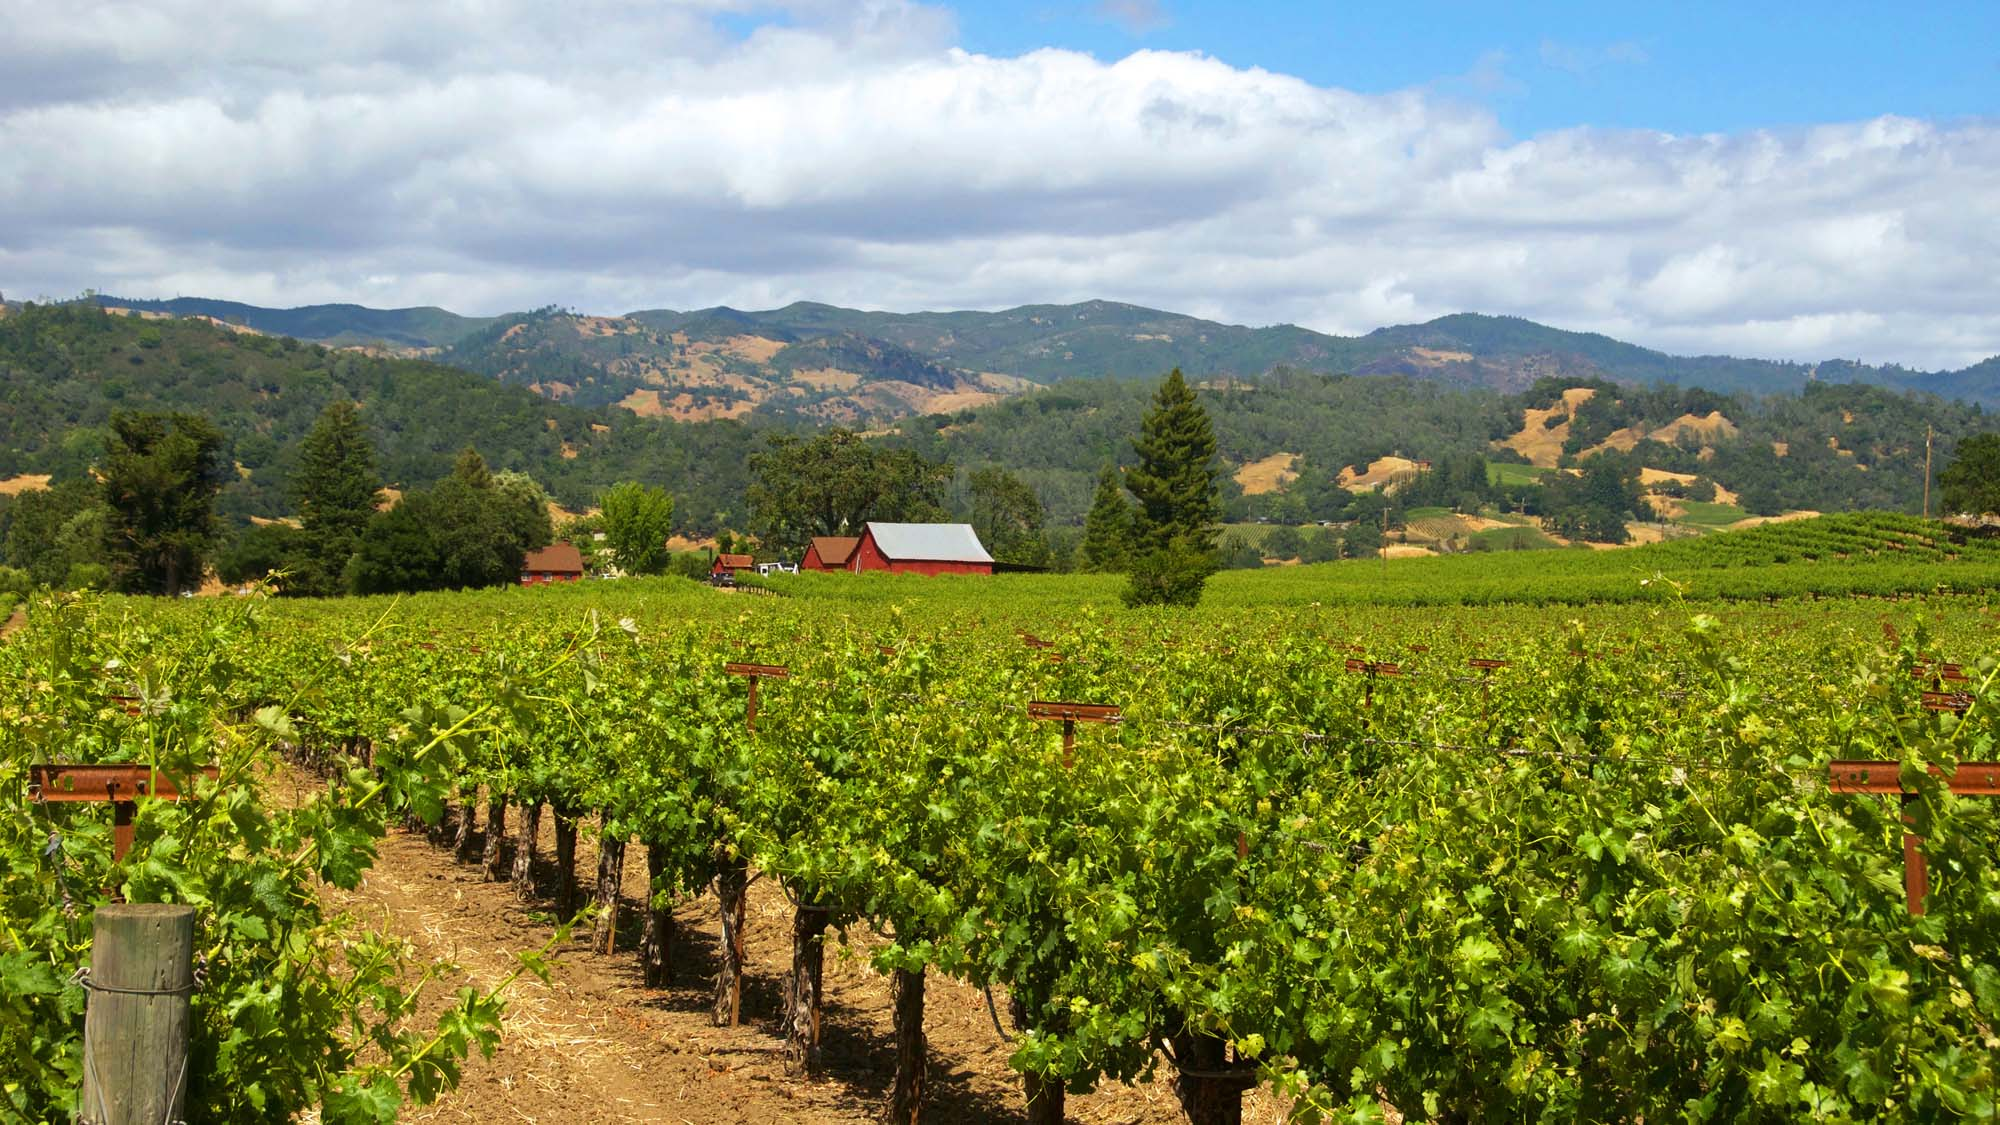 Wine Country Counties Sue Governor Newsom Over Outdoor Dining Closure